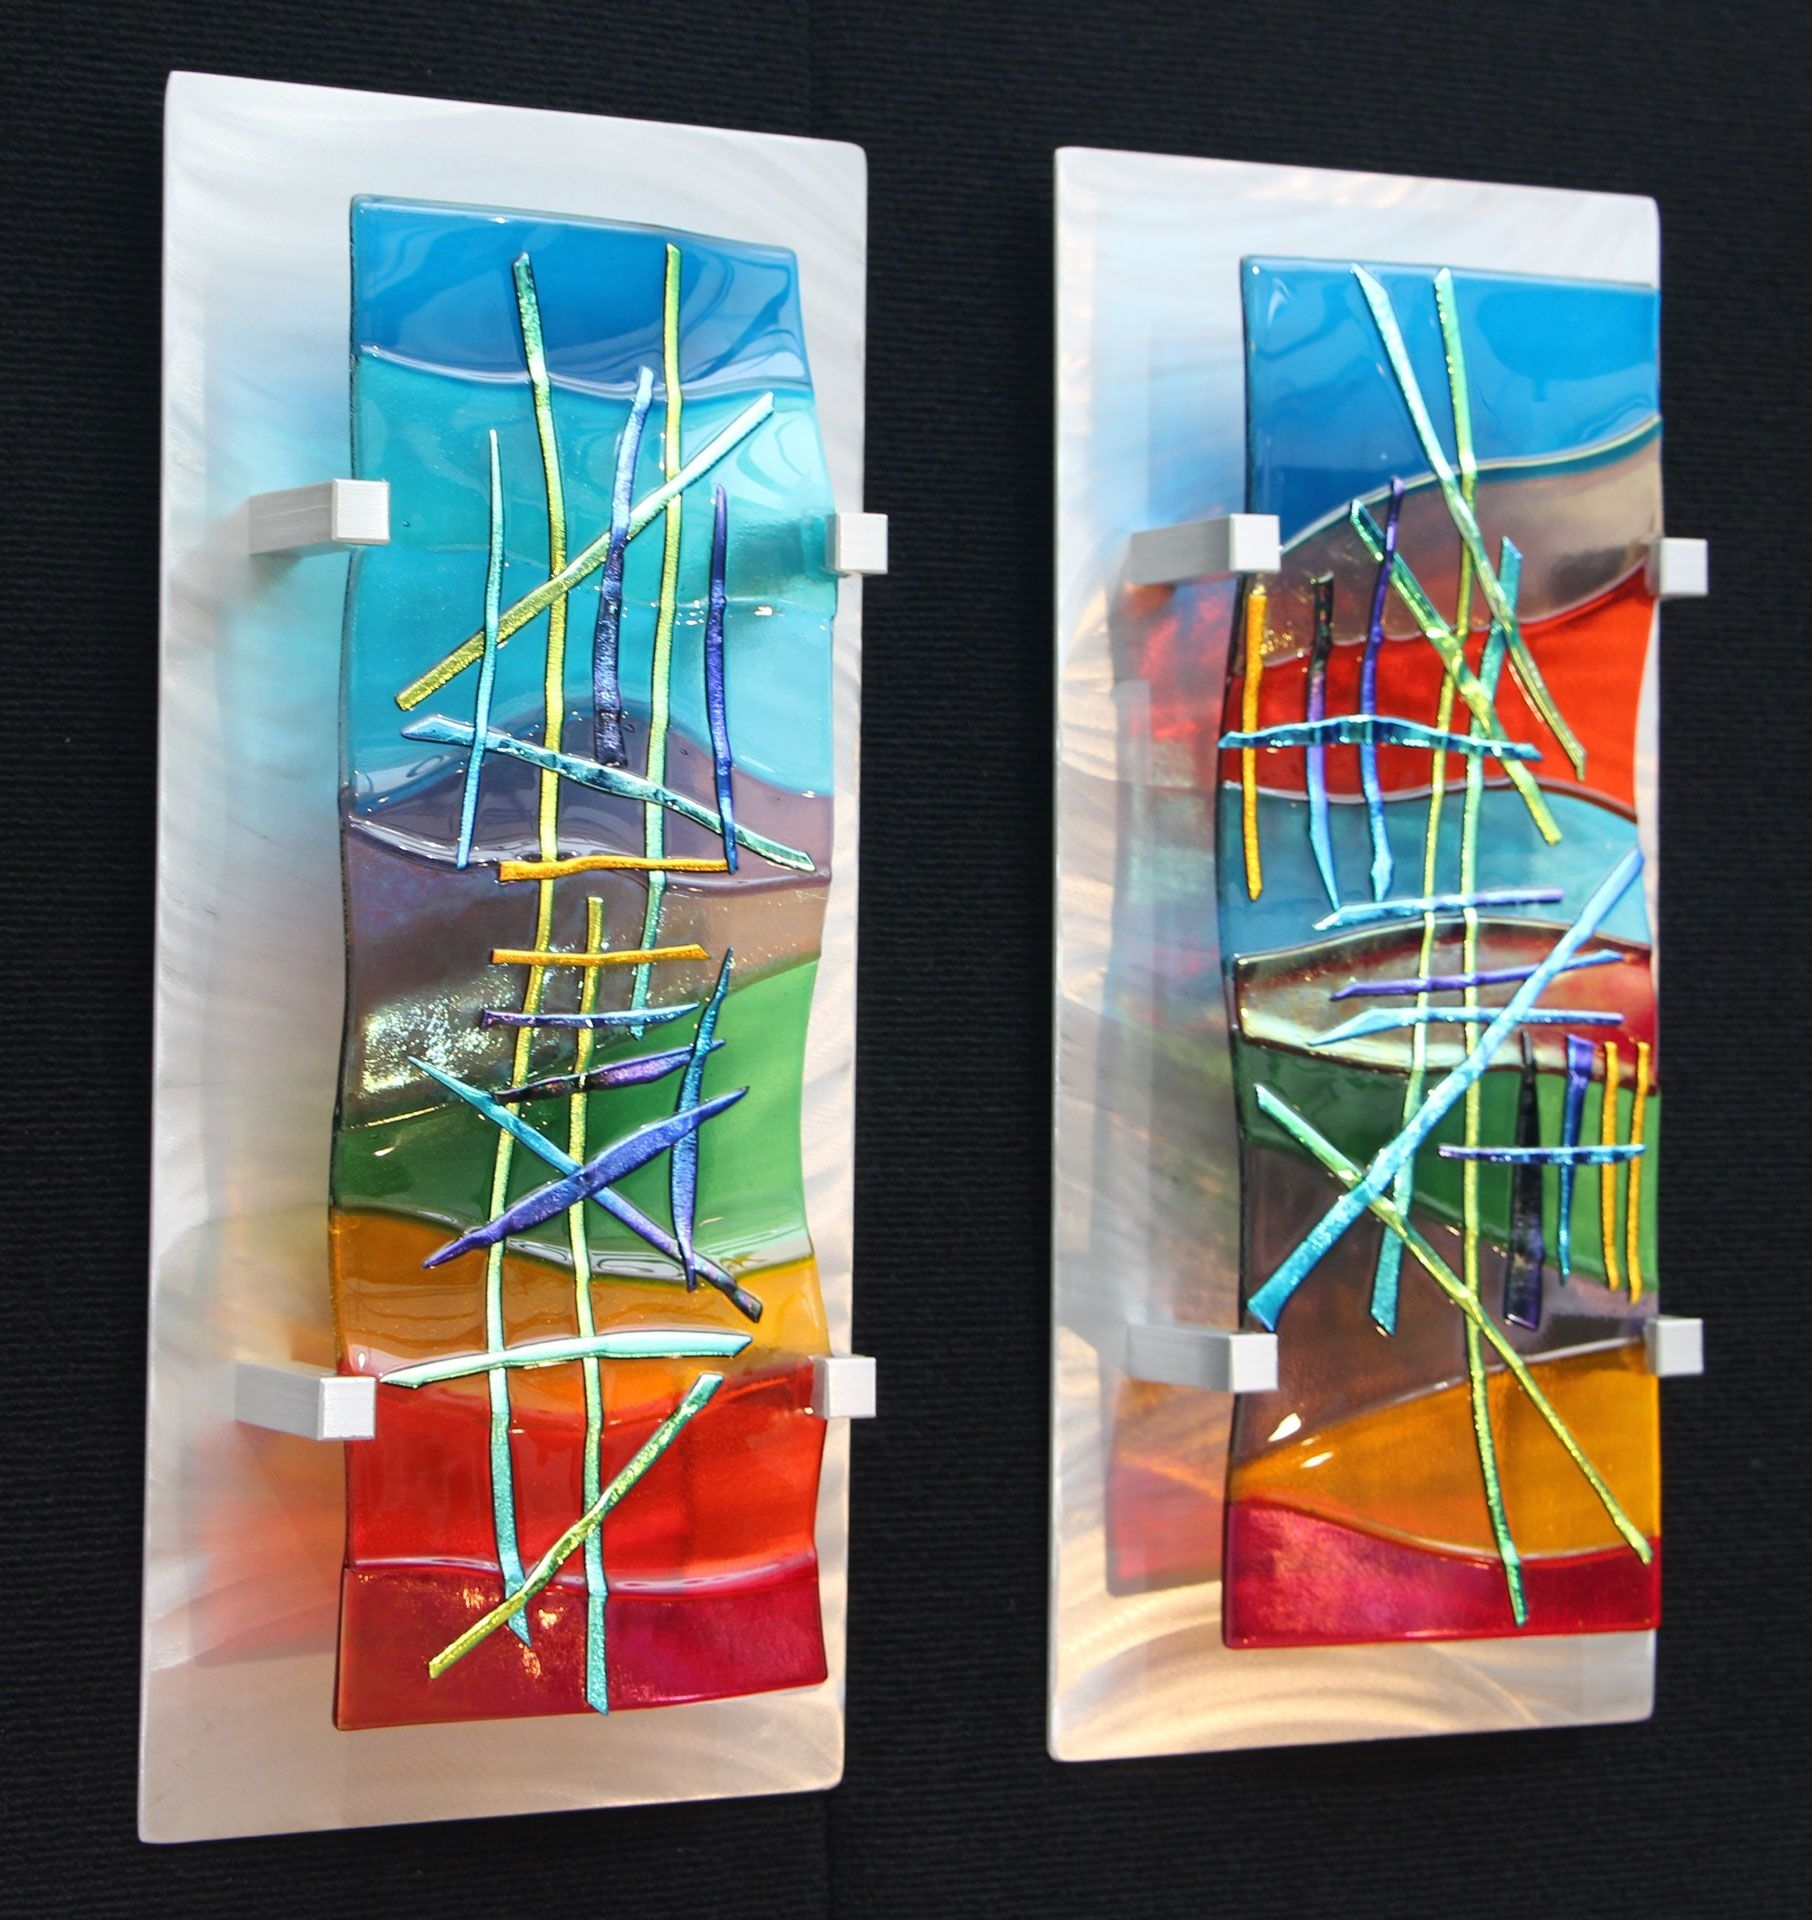 Fused Glass Wall Artfrank Thompson | Glass Ideas | Pinterest With Best And Newest Glass Wall Art (View 6 of 15)